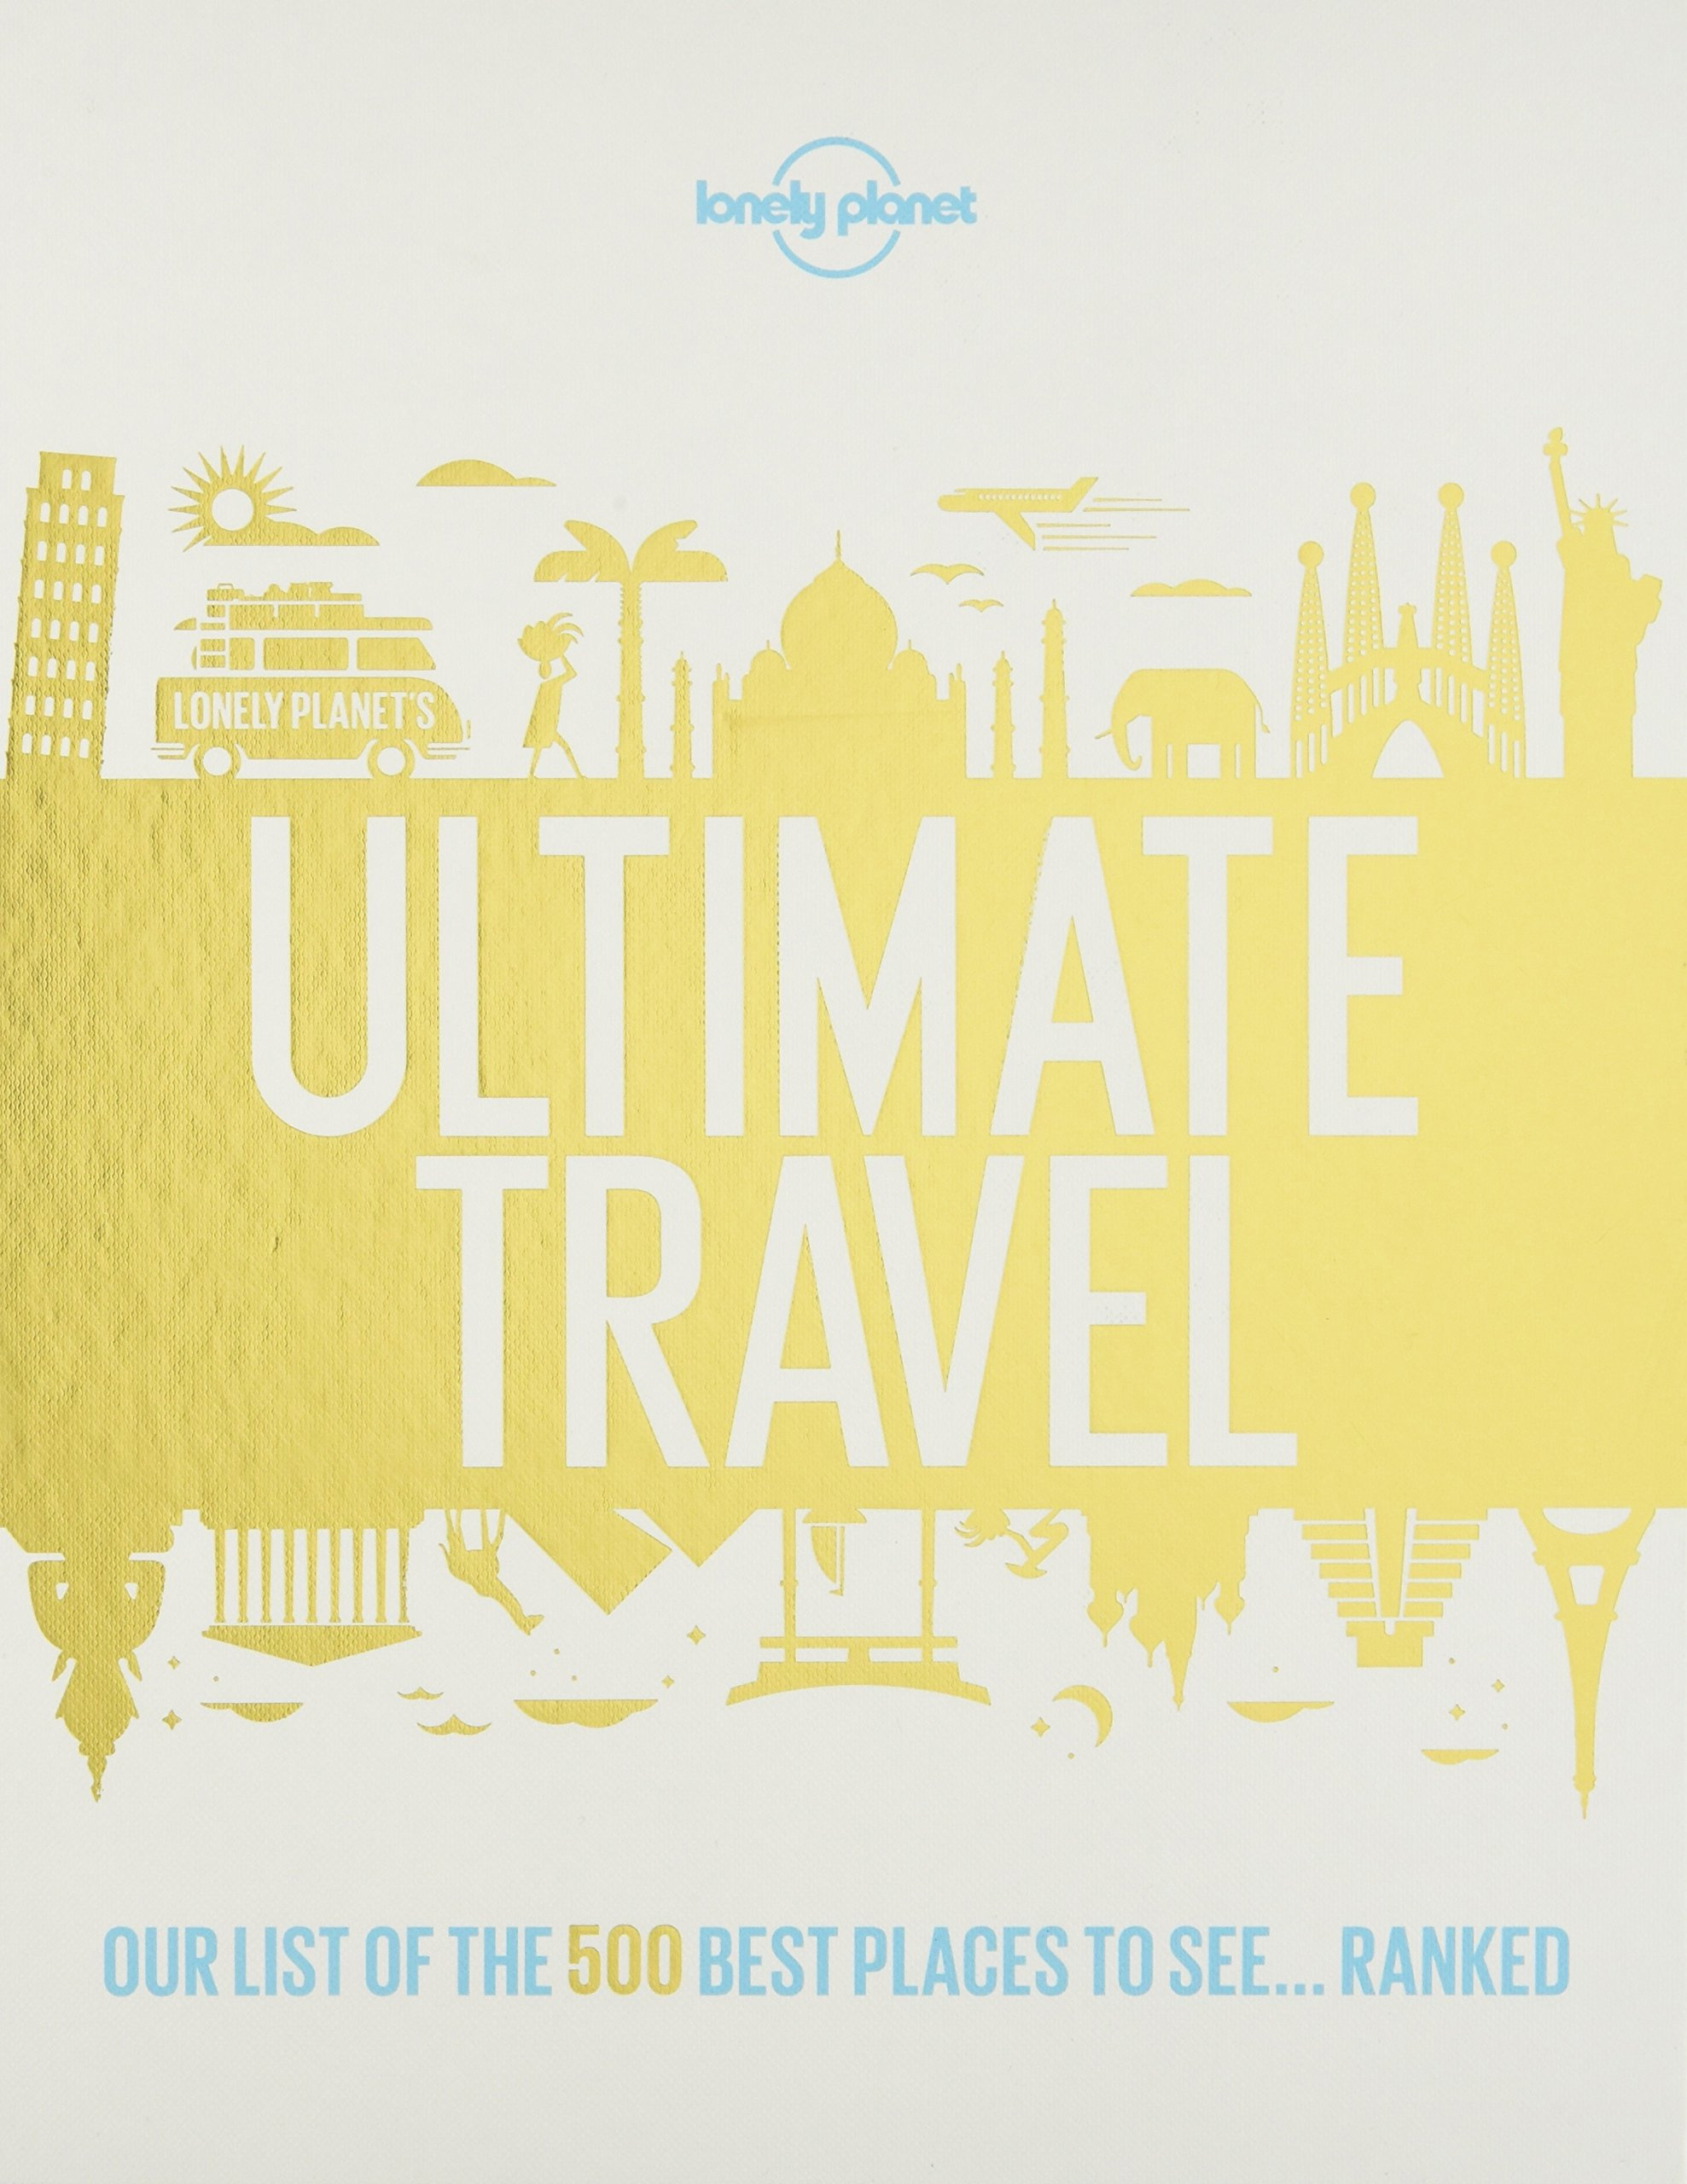 #9 The Ultimate Travel Book - This book is basically a bucket list in hardcover. But it's great for anyone who wants to learn about the worlds' can't miss spots and destinations as ranked by some people who know a thing or two about travel. Lonely Planet picked the world's top 500 places to see and ranked them. Want to know what #1 is? Guess you'll just have to get it for the traveller in your life!